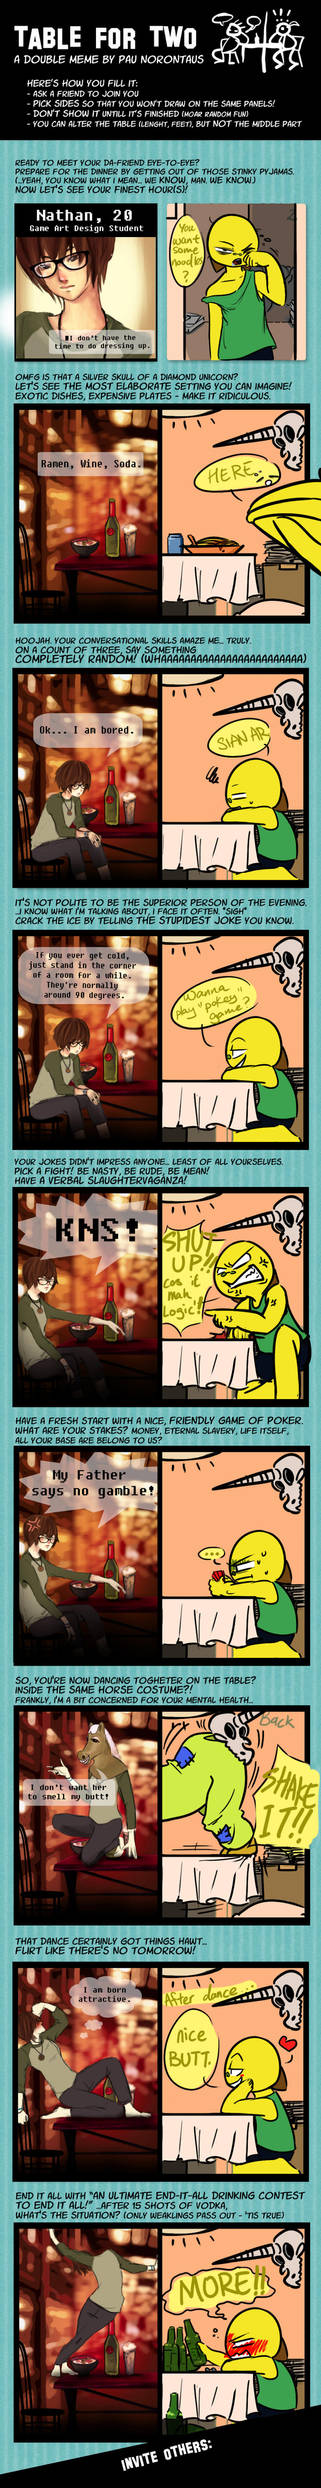 Table For 2 Double Meme By Pau Norontaus-d34 by Nathaniel-Aoife